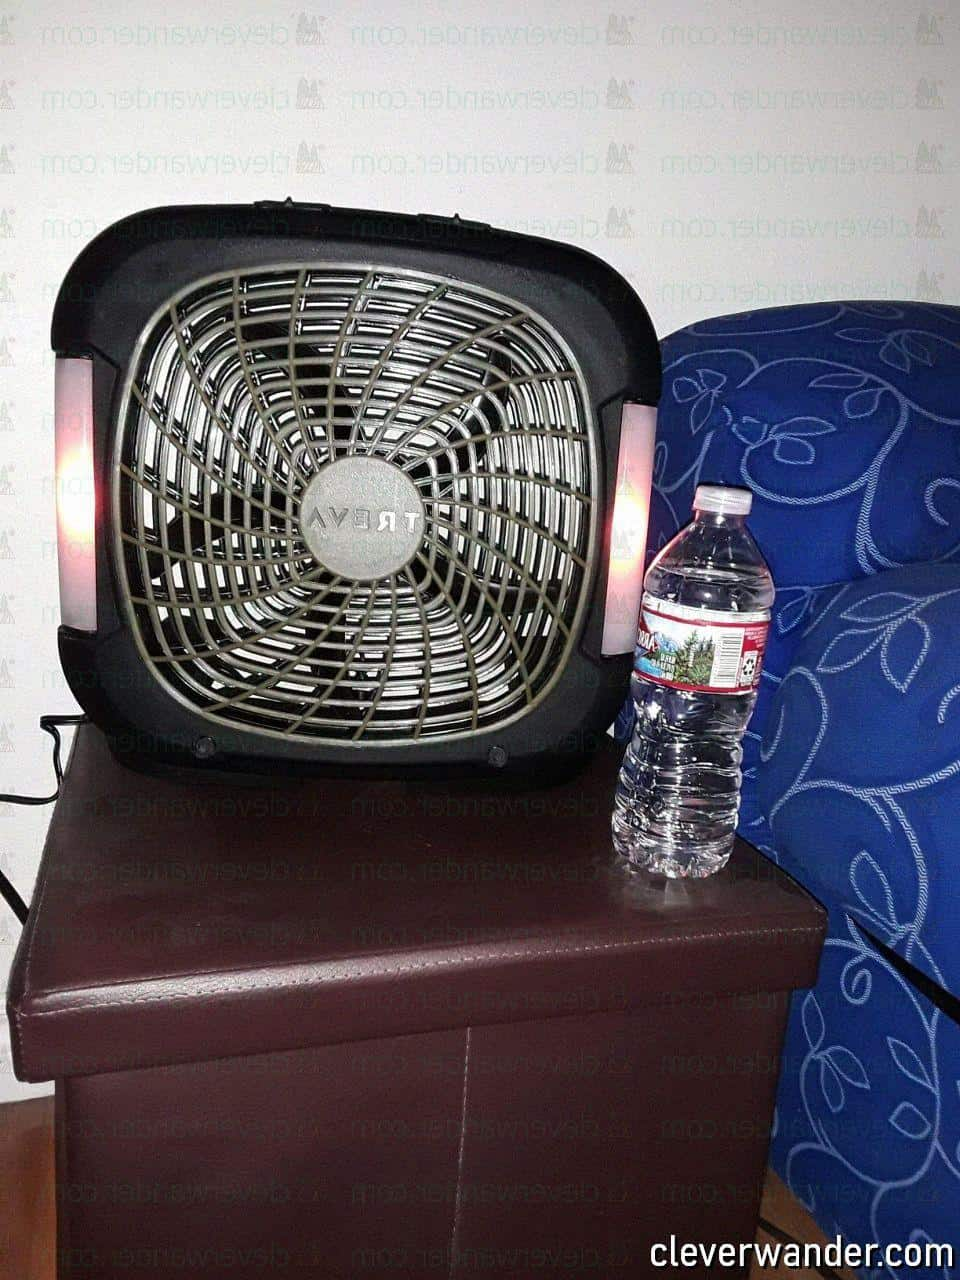 O2COOL Treva Speed Battery Powered Portable Fan - image review 3